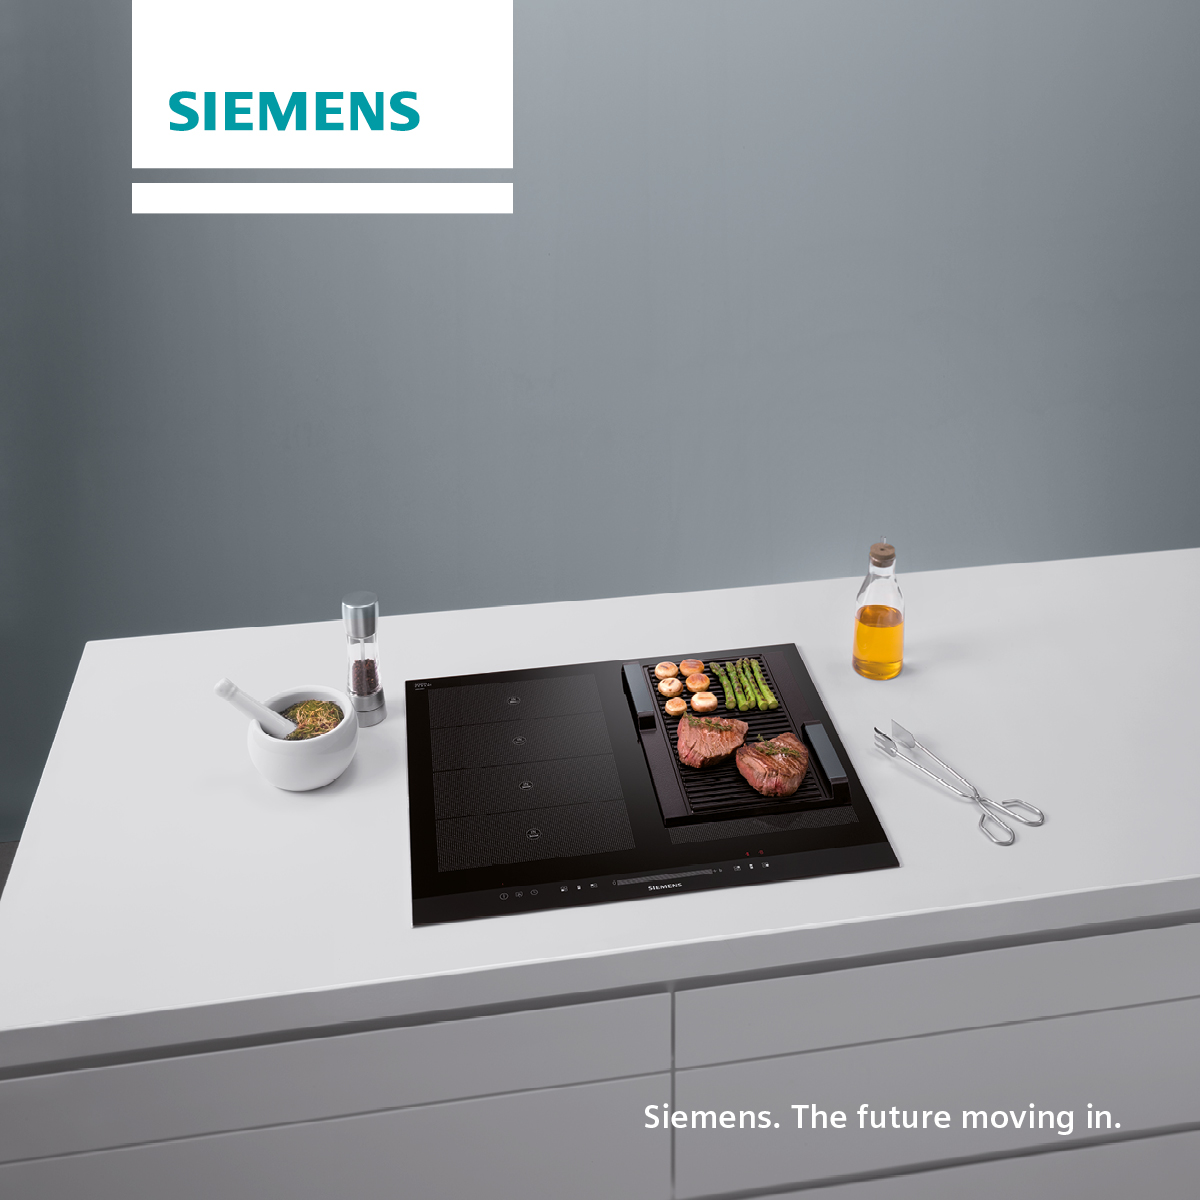 Free offer from Siemens